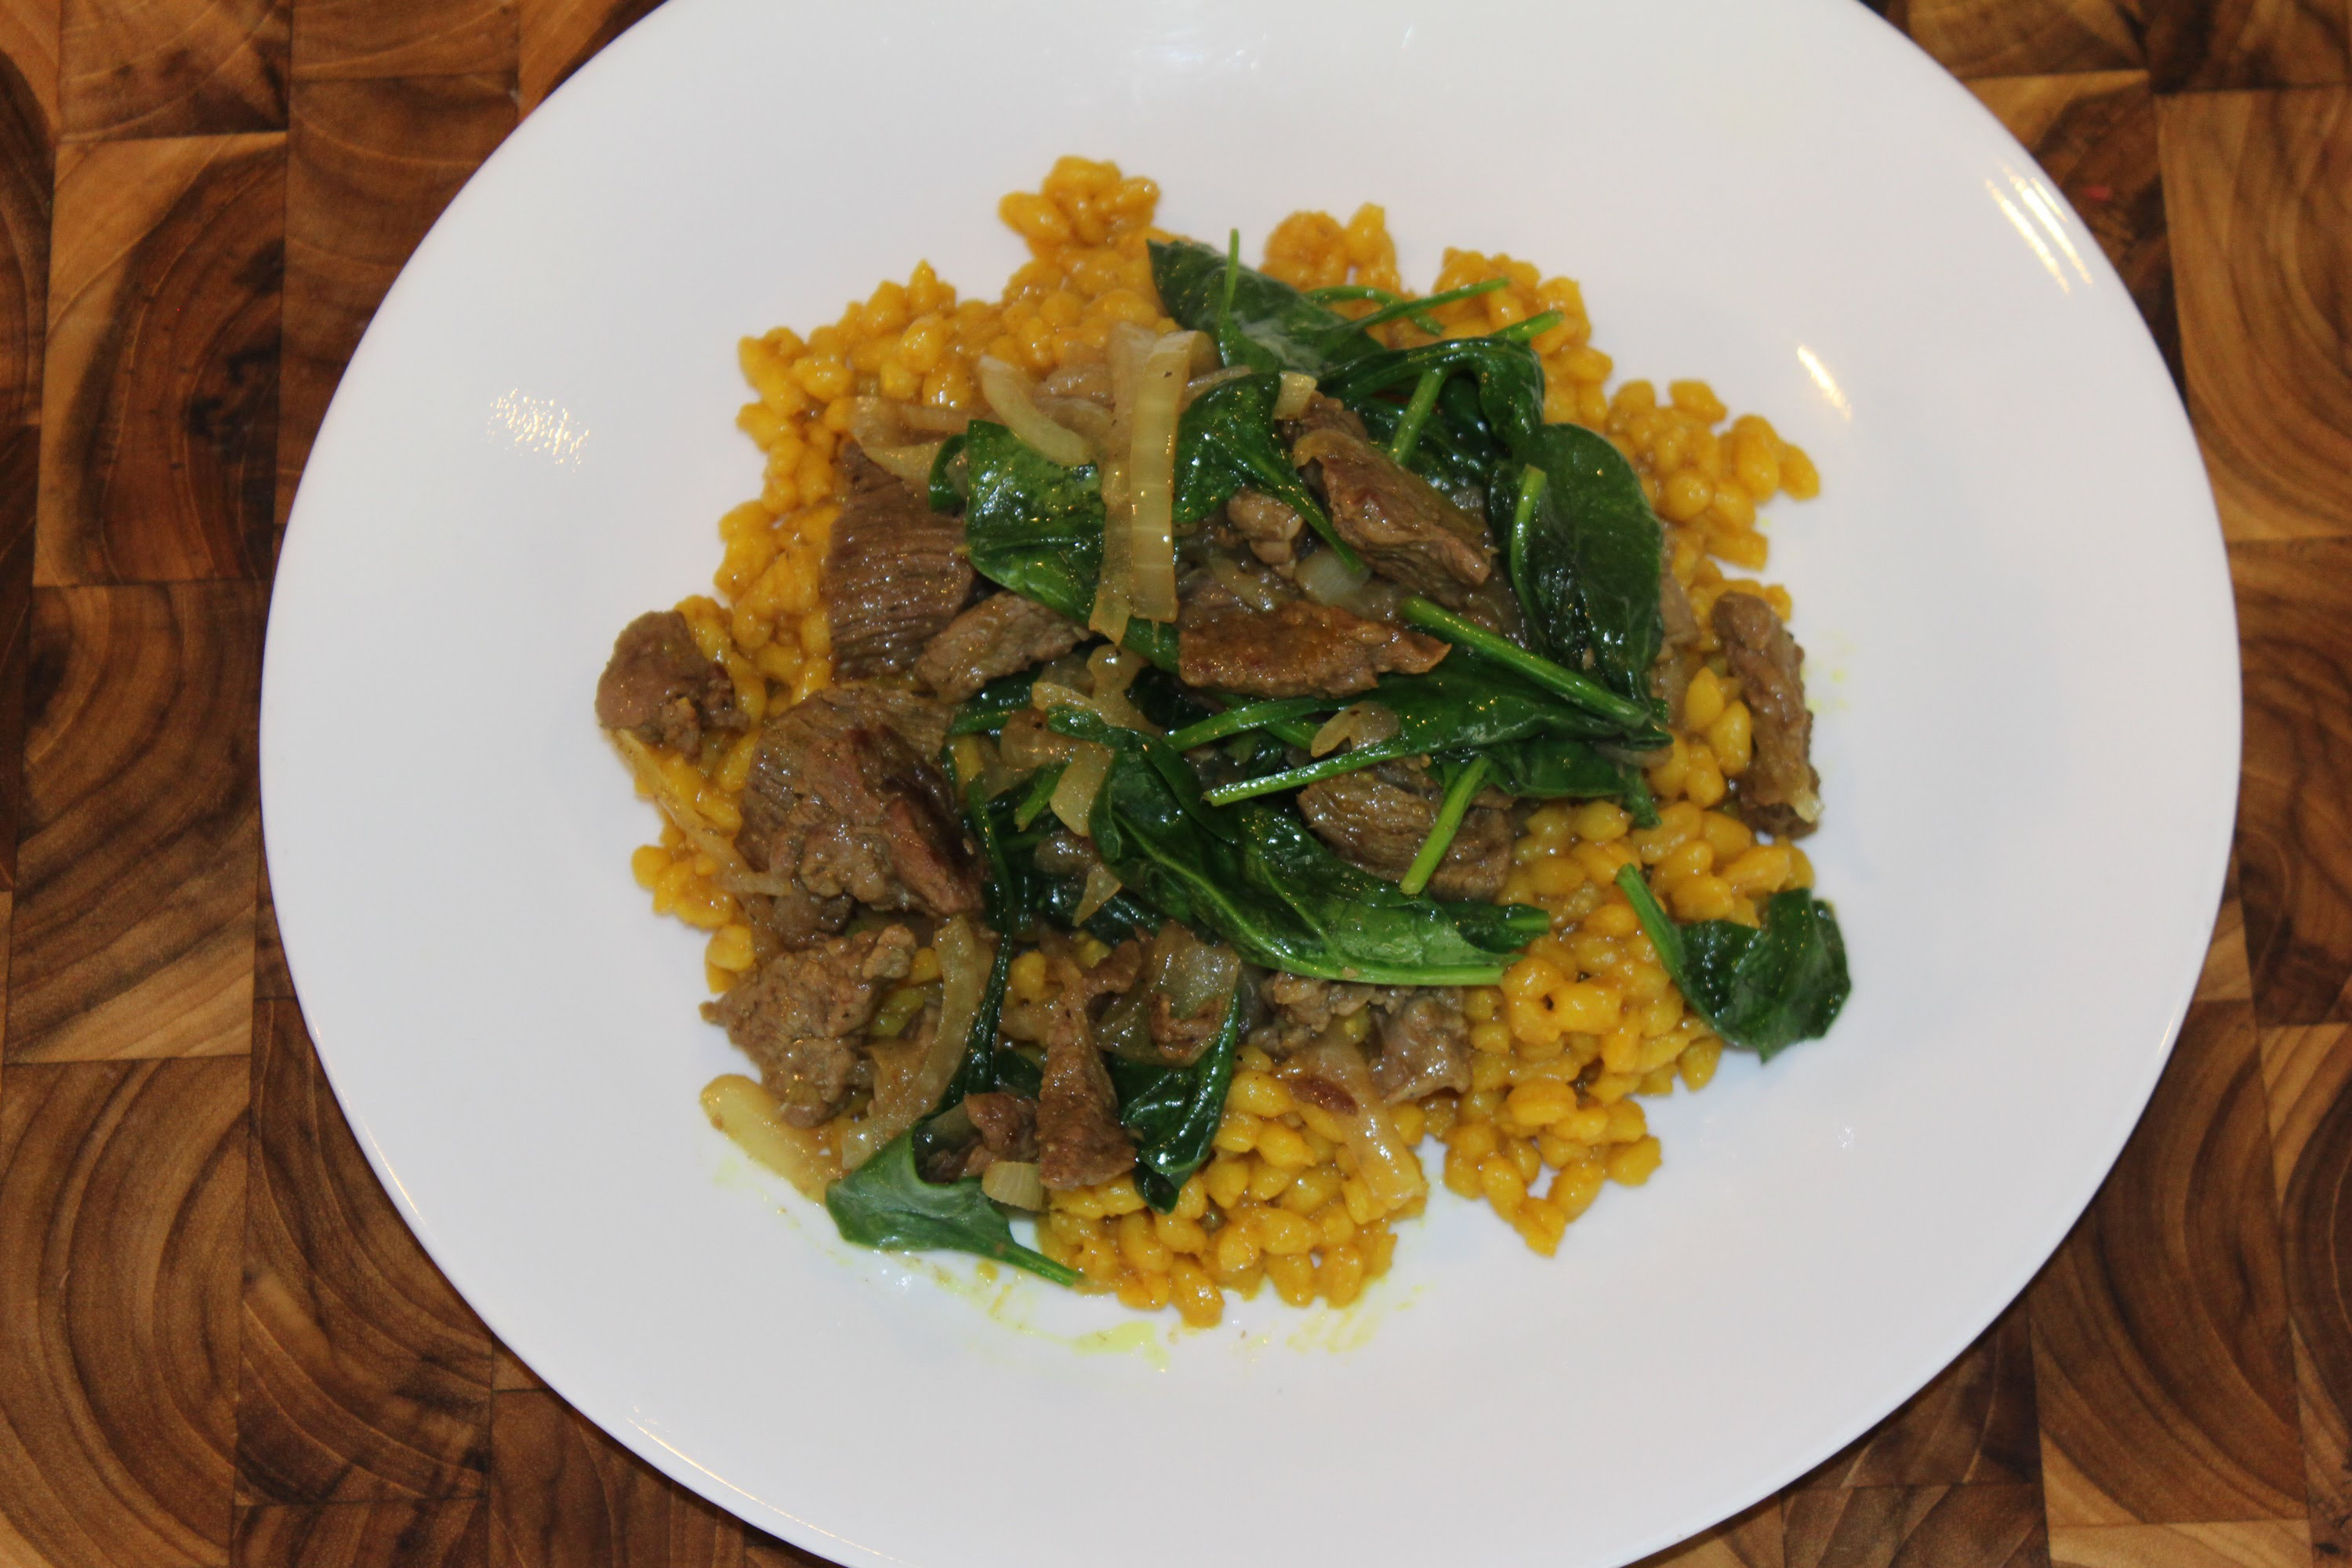 Turmeric Barley with Caramelized Onions